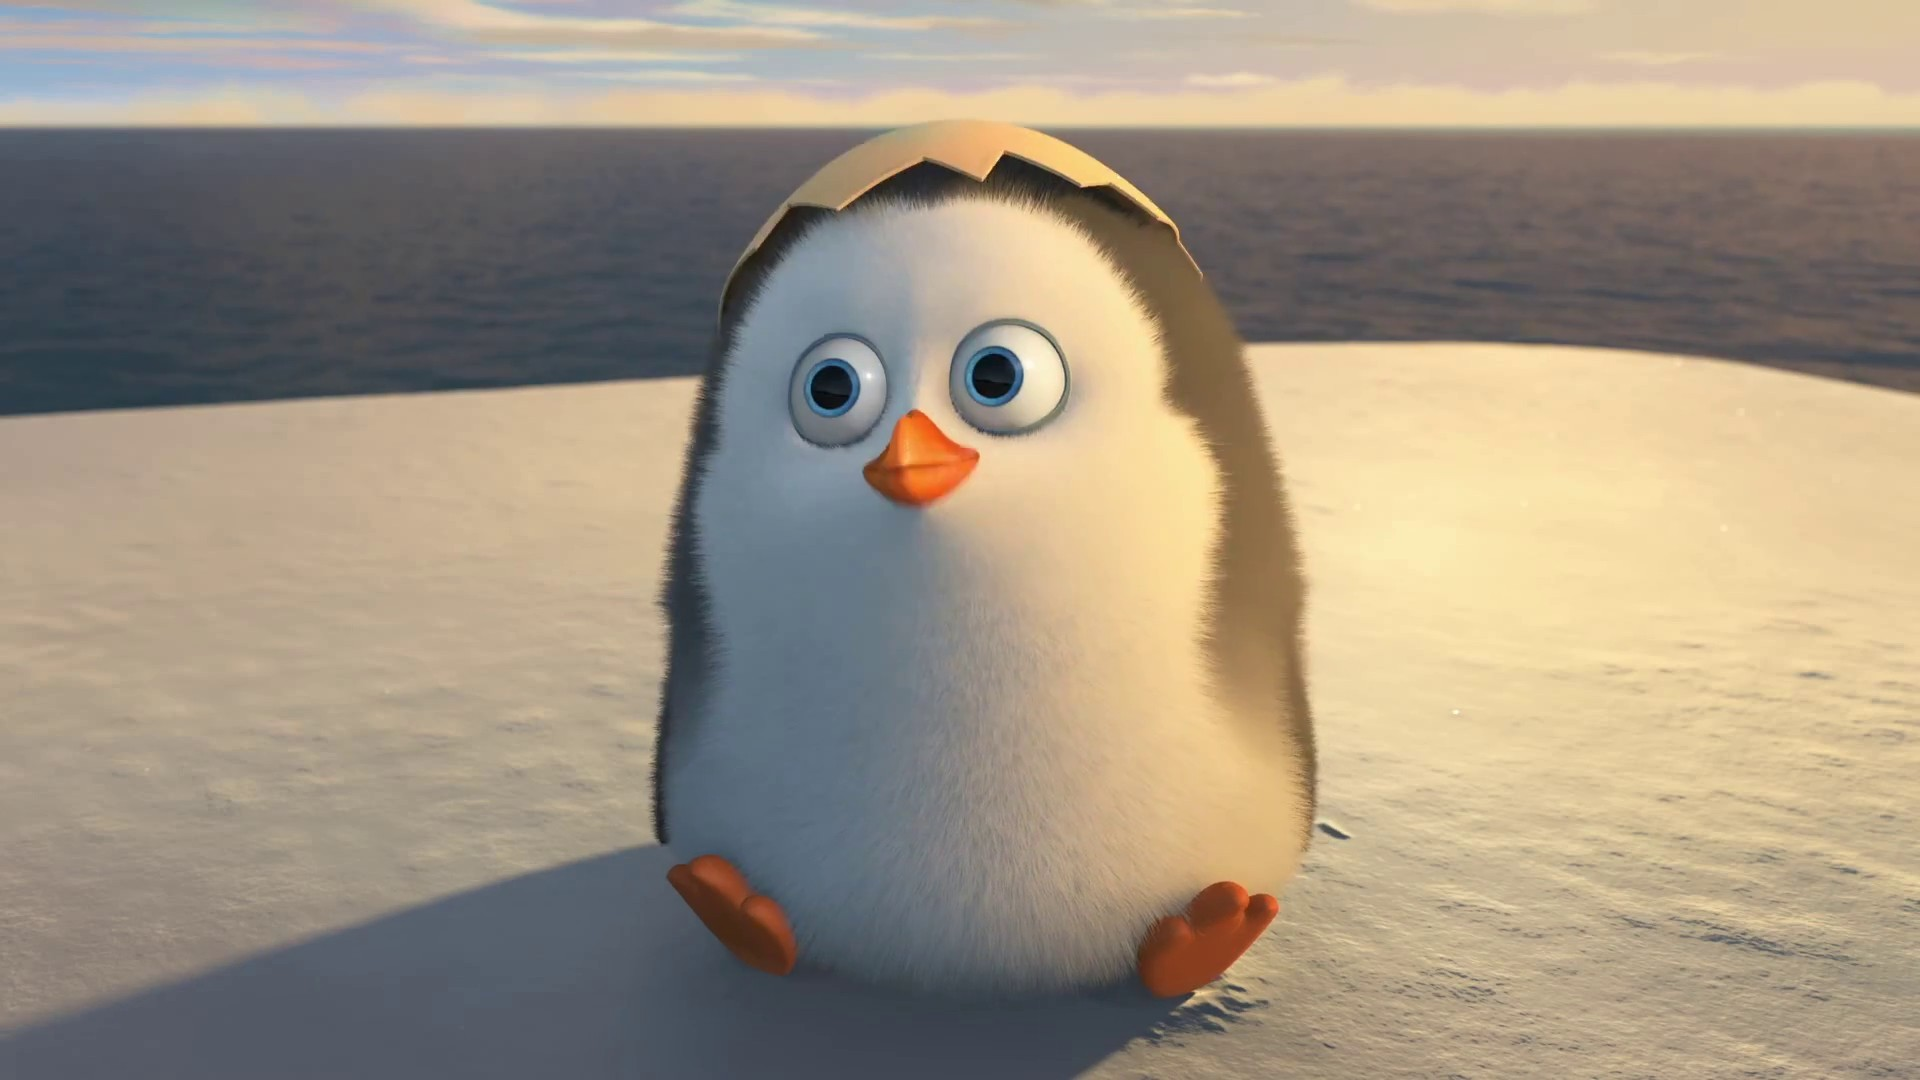 1920x1080 The Penguins Of Madagascar Movie 2014 Cute Baby